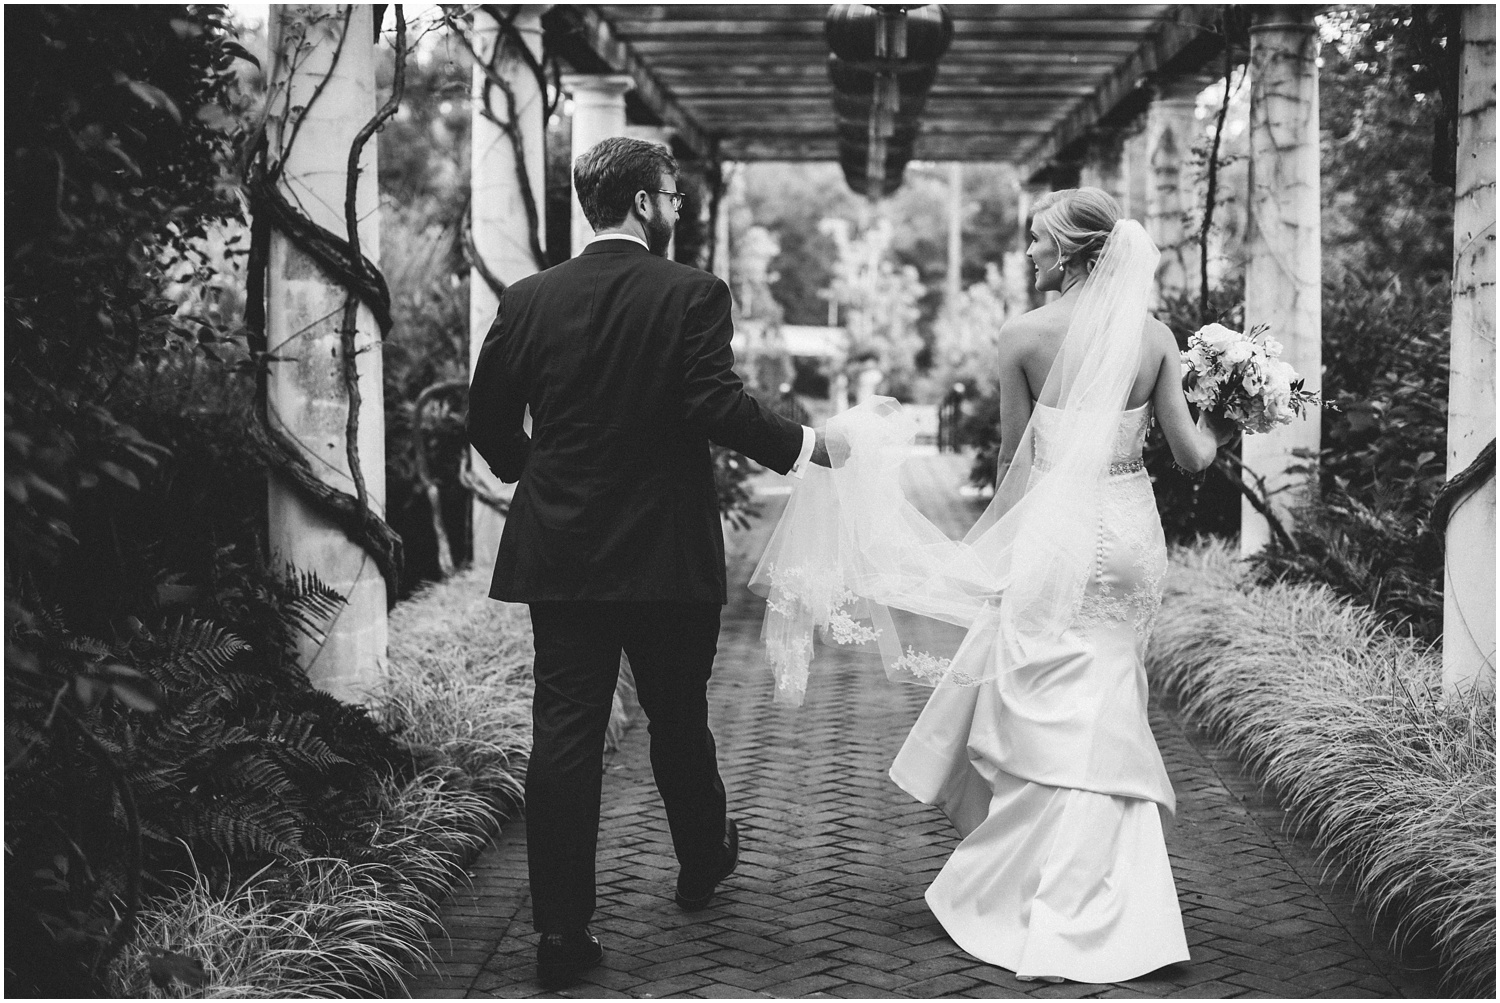 DSBG Wedding | Amore Vita Photography_0029.jpg